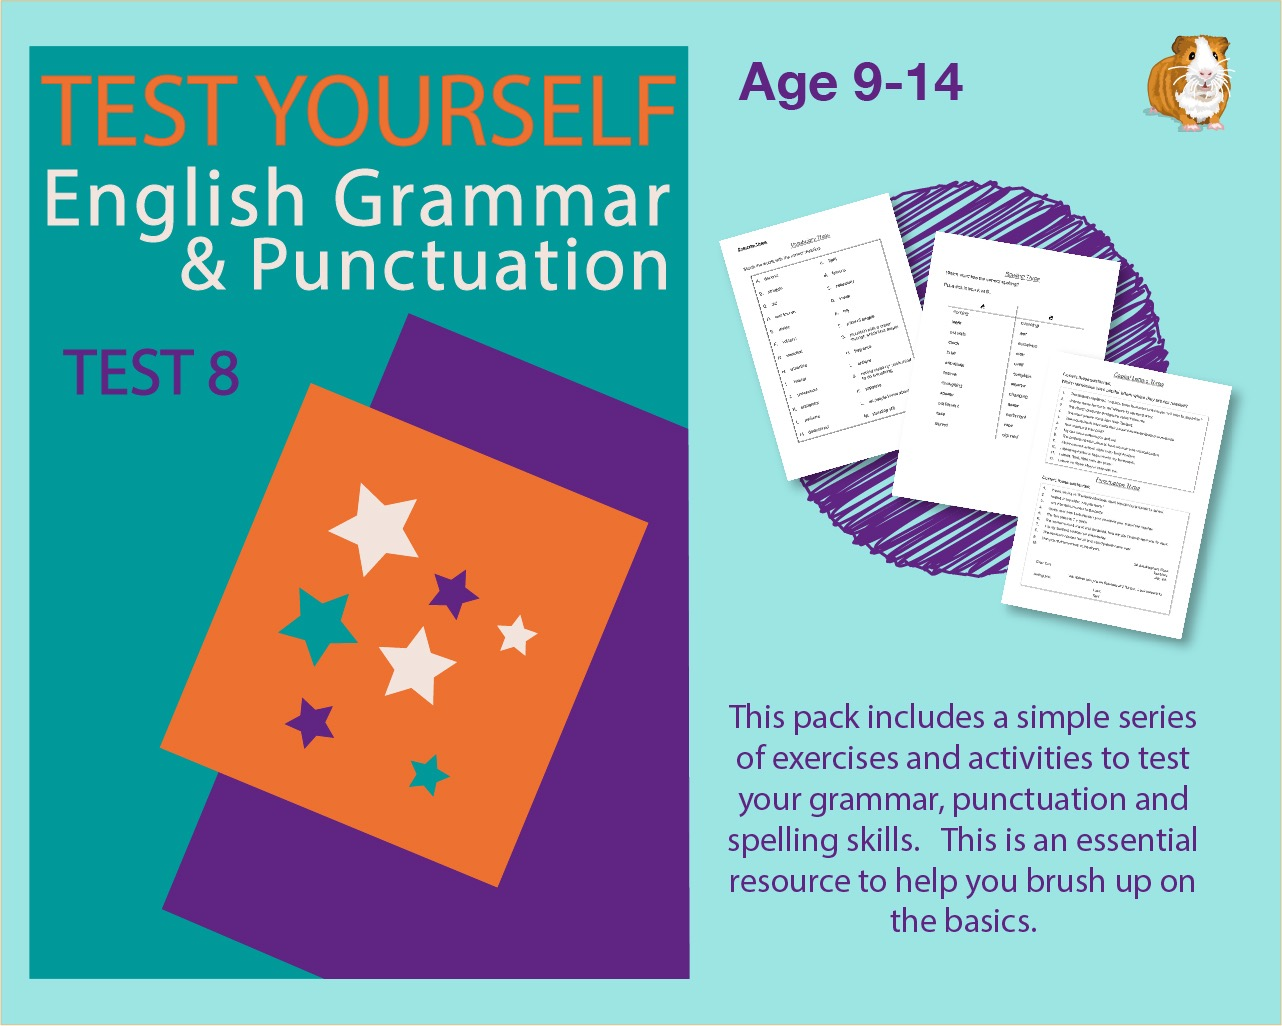 Assessment Test 8 (Test Your English Grammar And Punctuation Skills) 9-14 years